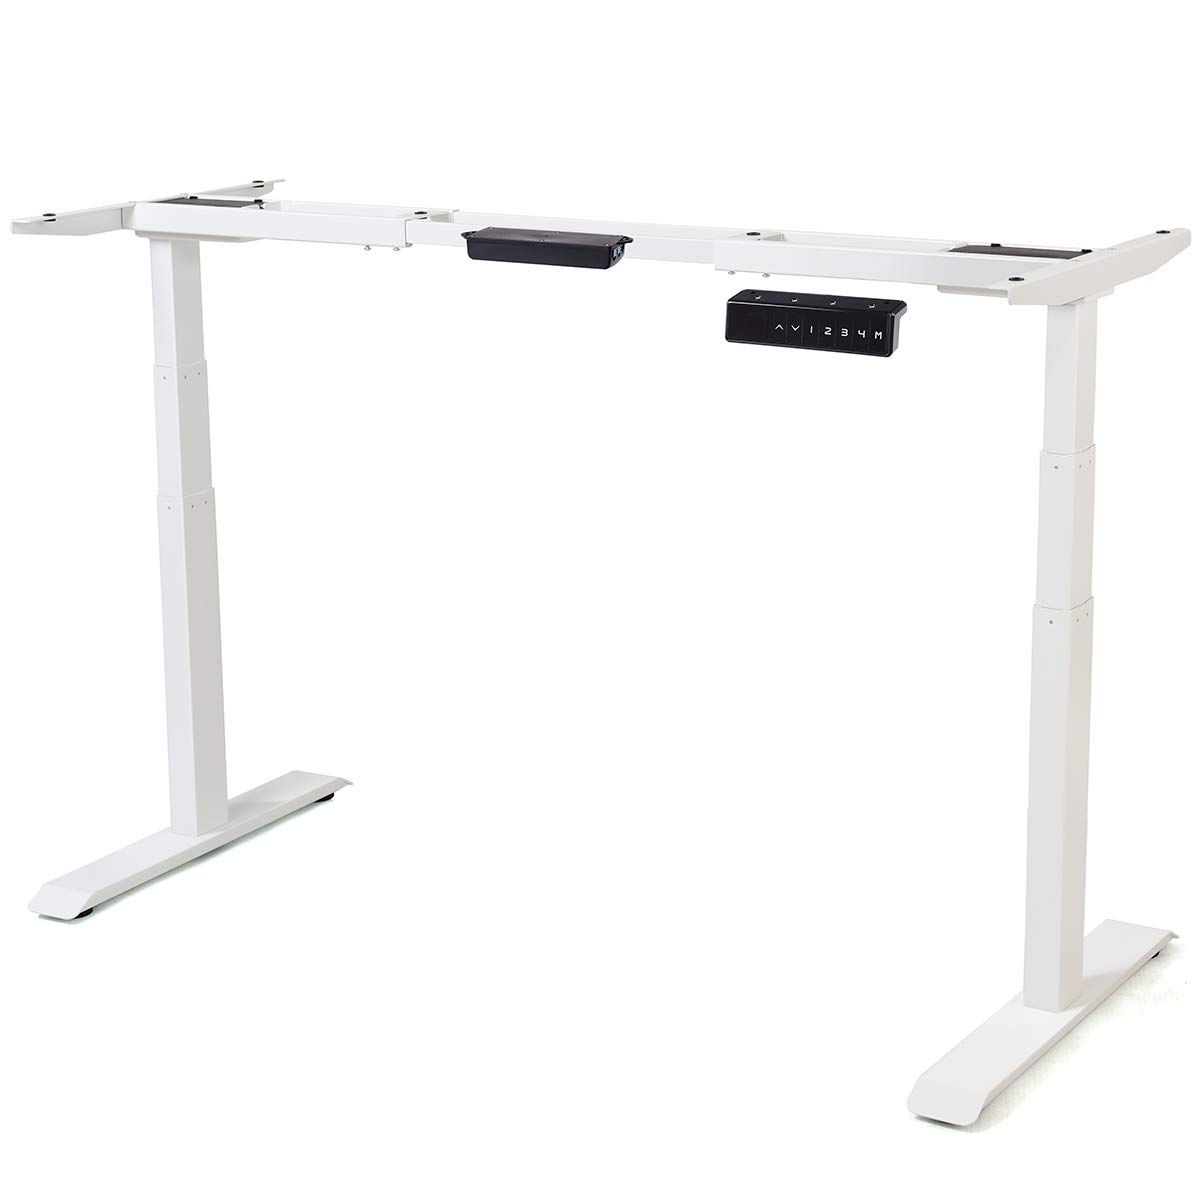 Toolsempire Dual Motor Electric Height Adjustable Standing Desk Frame Sit to Stand Table Base Ergonomic Stand up Riser with Memory Controller (White Frame)